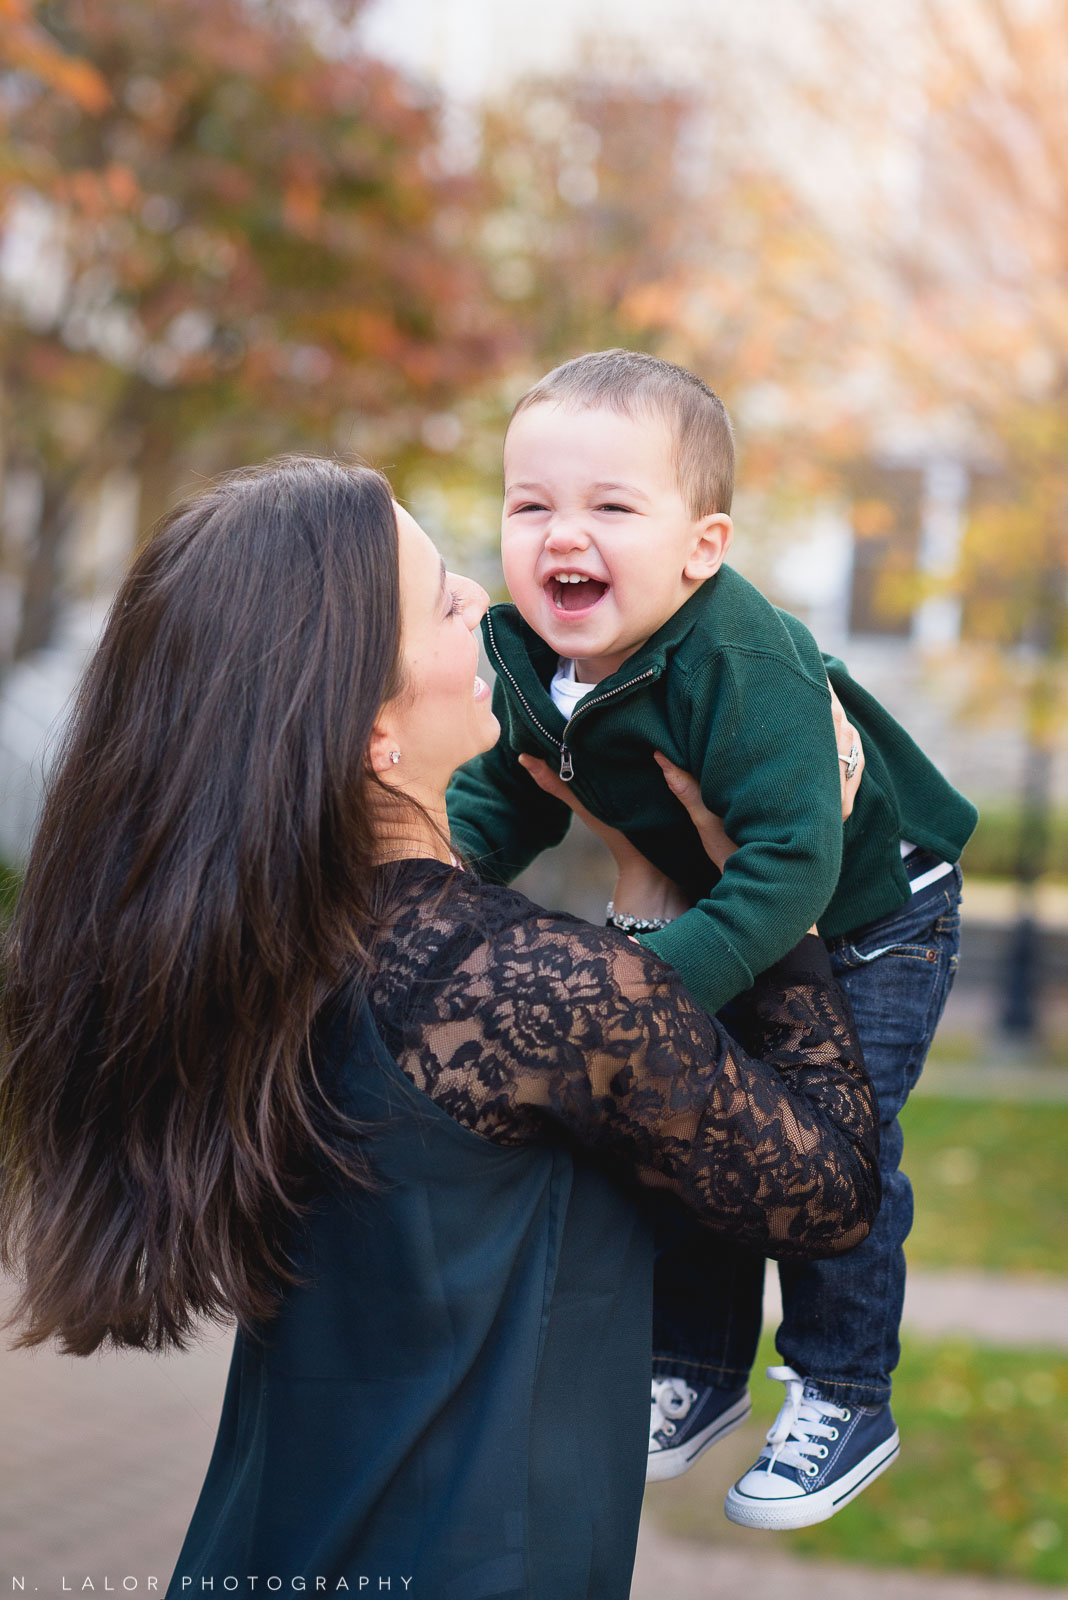 Mom and her joyful laughing toddler son. Lifestyle family portrait by N. Lalor Photography. Fairfield County, Connecticut.